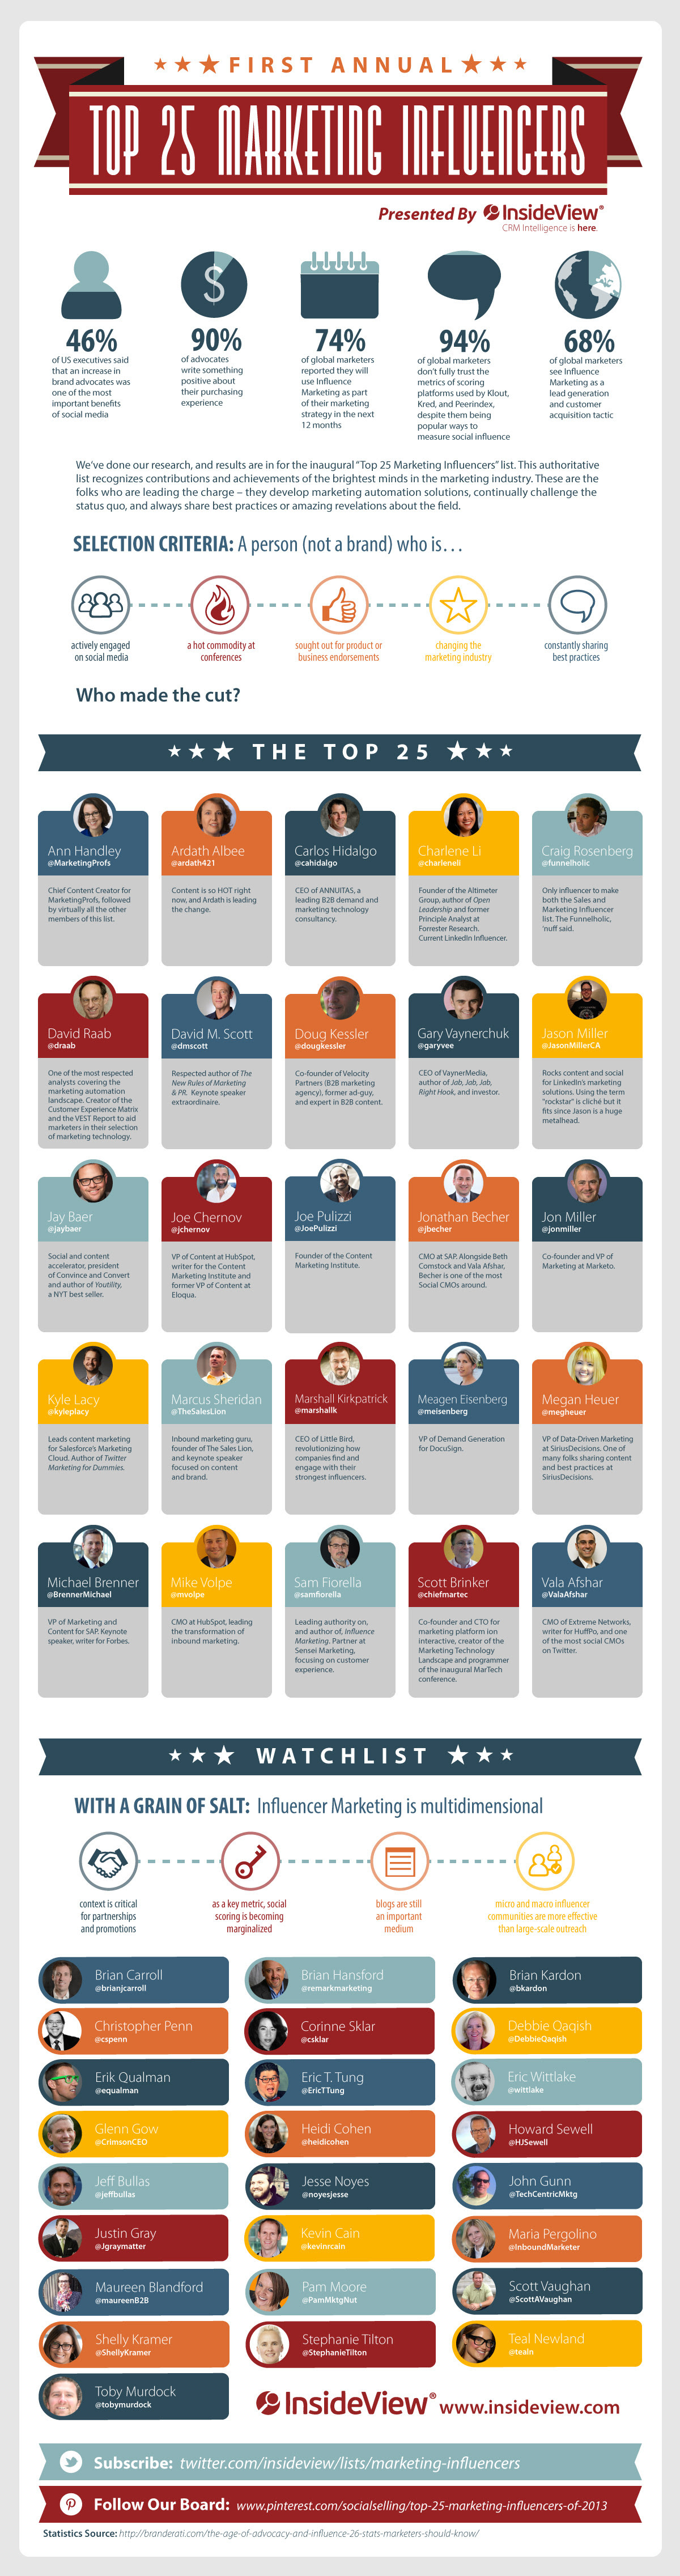 Top 25 Busienss-to-Busienss #Marketing Influencers - #infographic